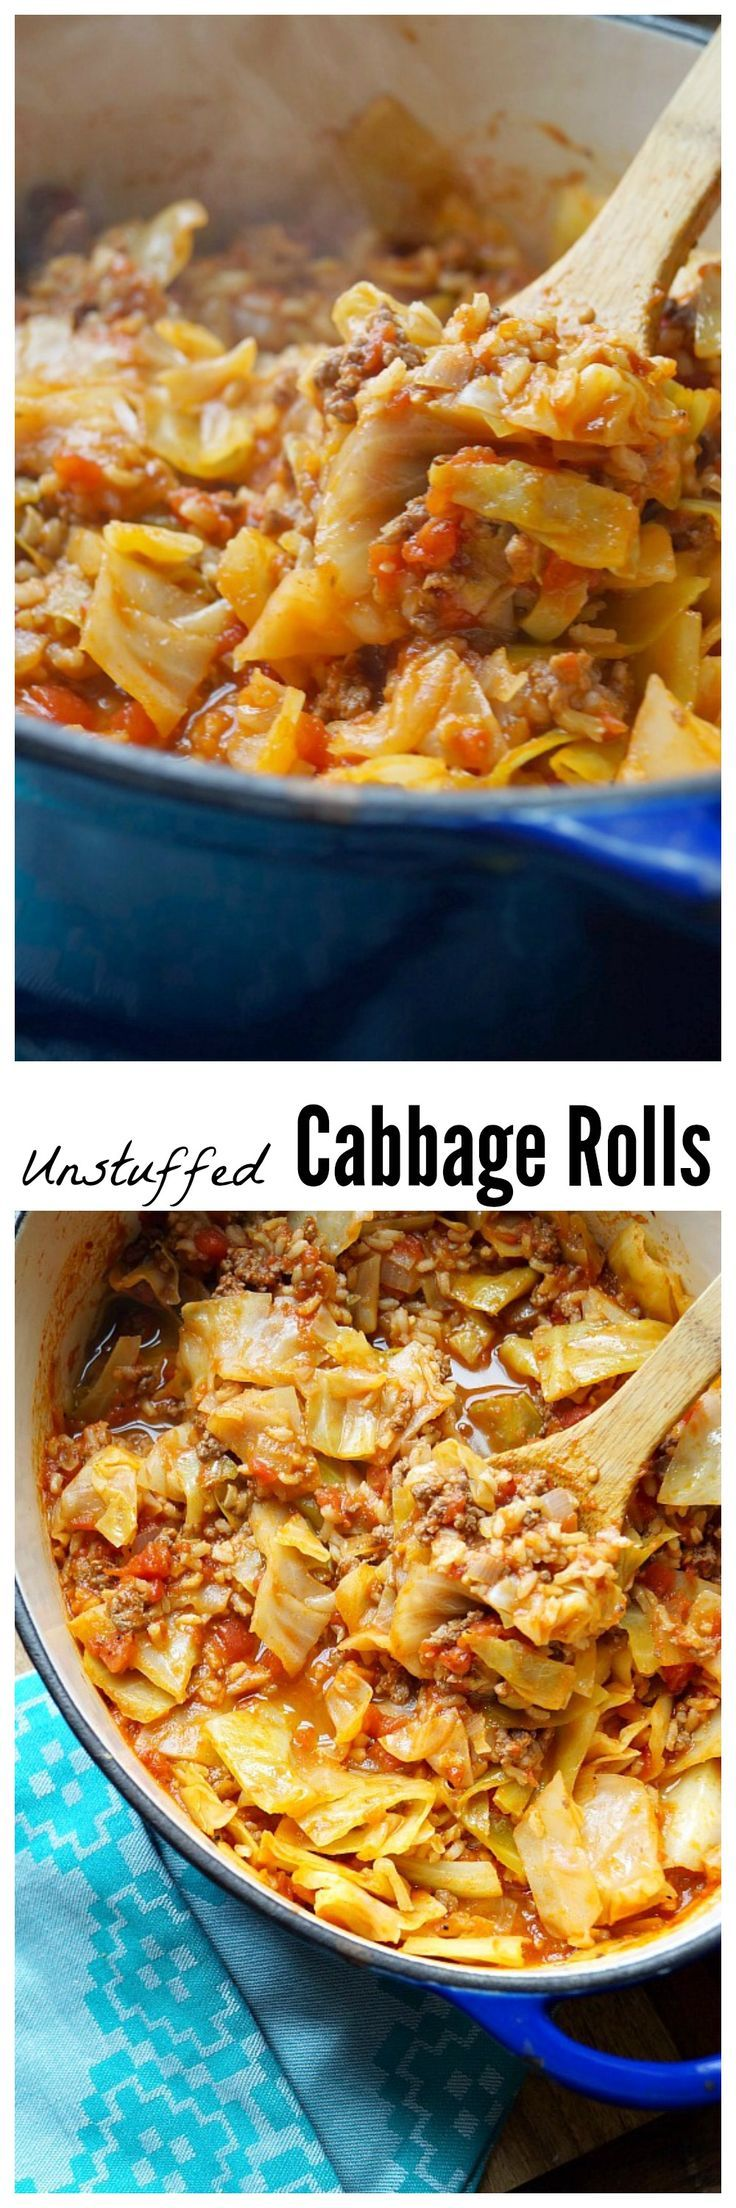 Healthy Unstuffed Cabbage Rolls